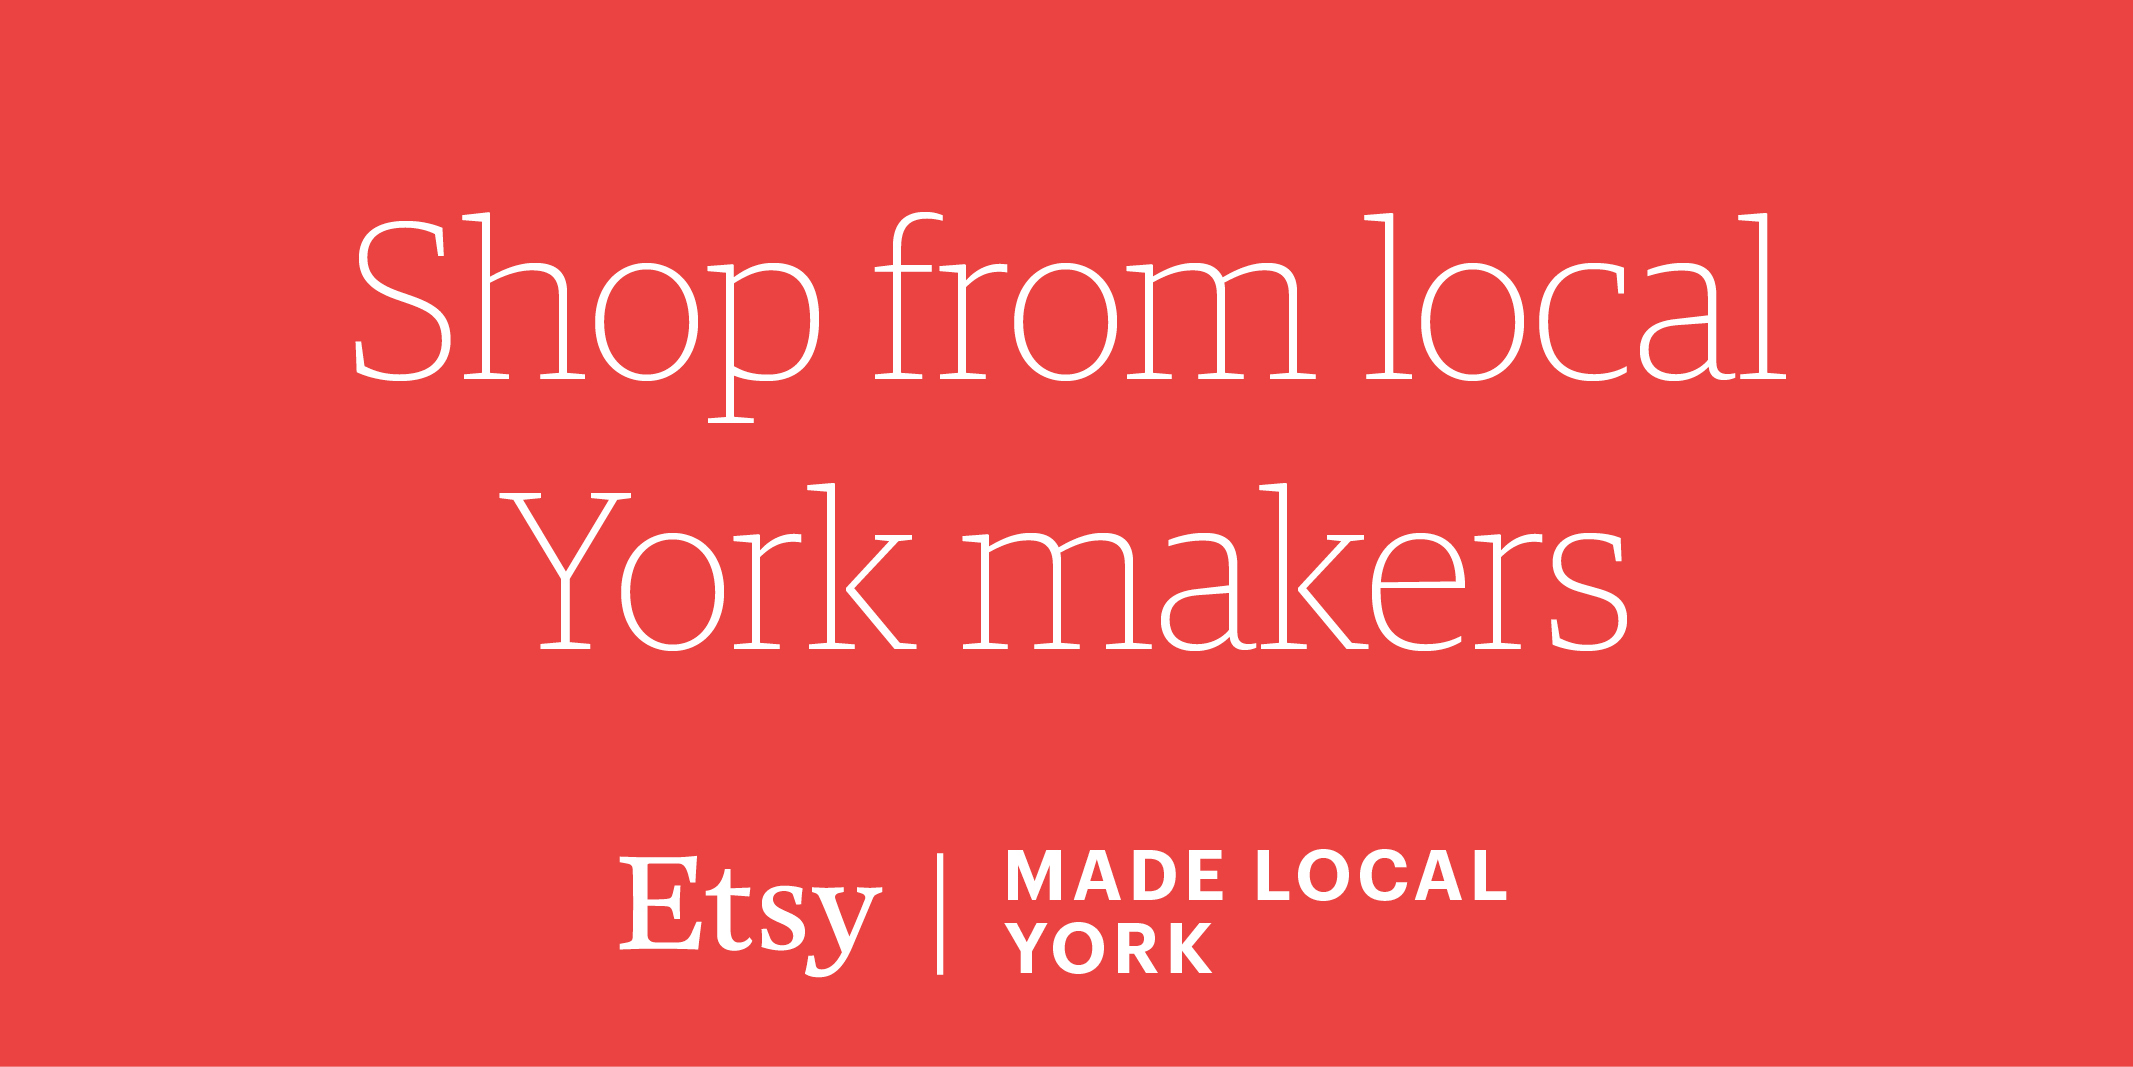 Etsy Made Local Shop York.jpg